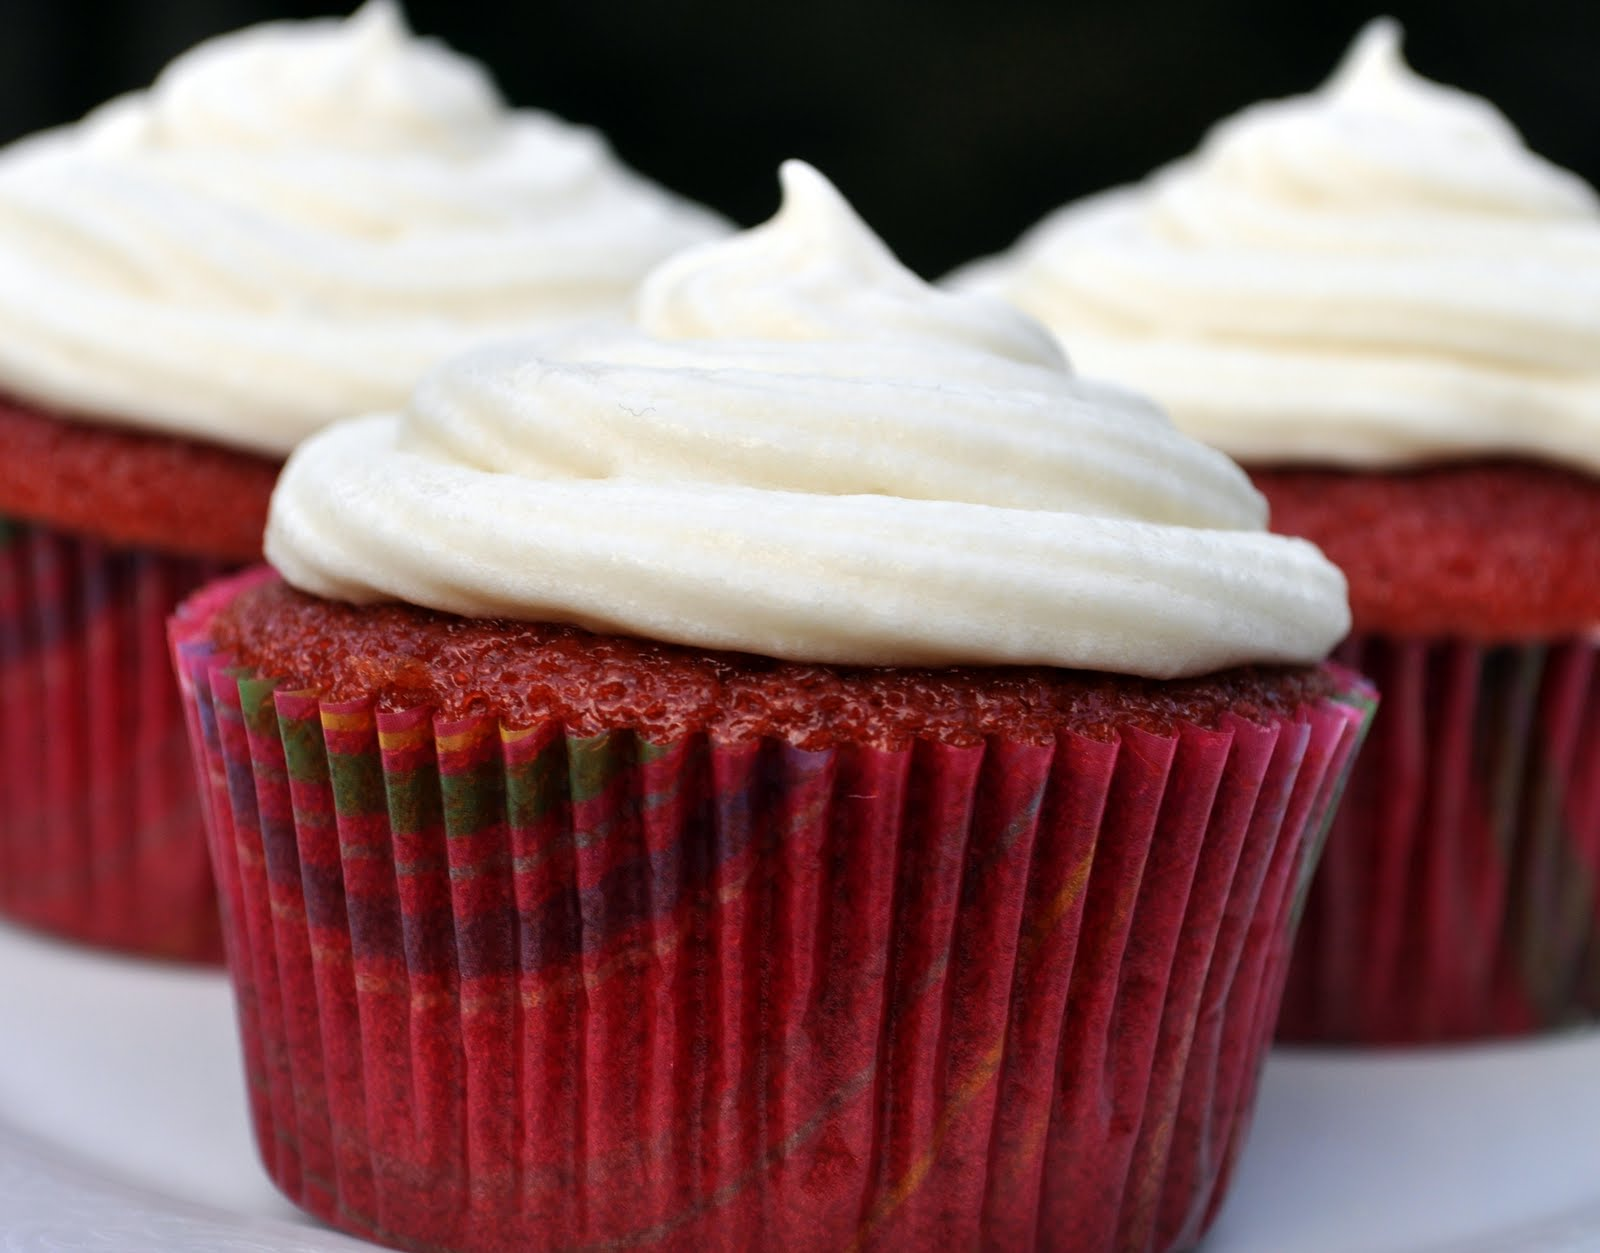 ... Kitchen: Stuffed Red Velvet Cupcakes with Cream Cheese Frosting